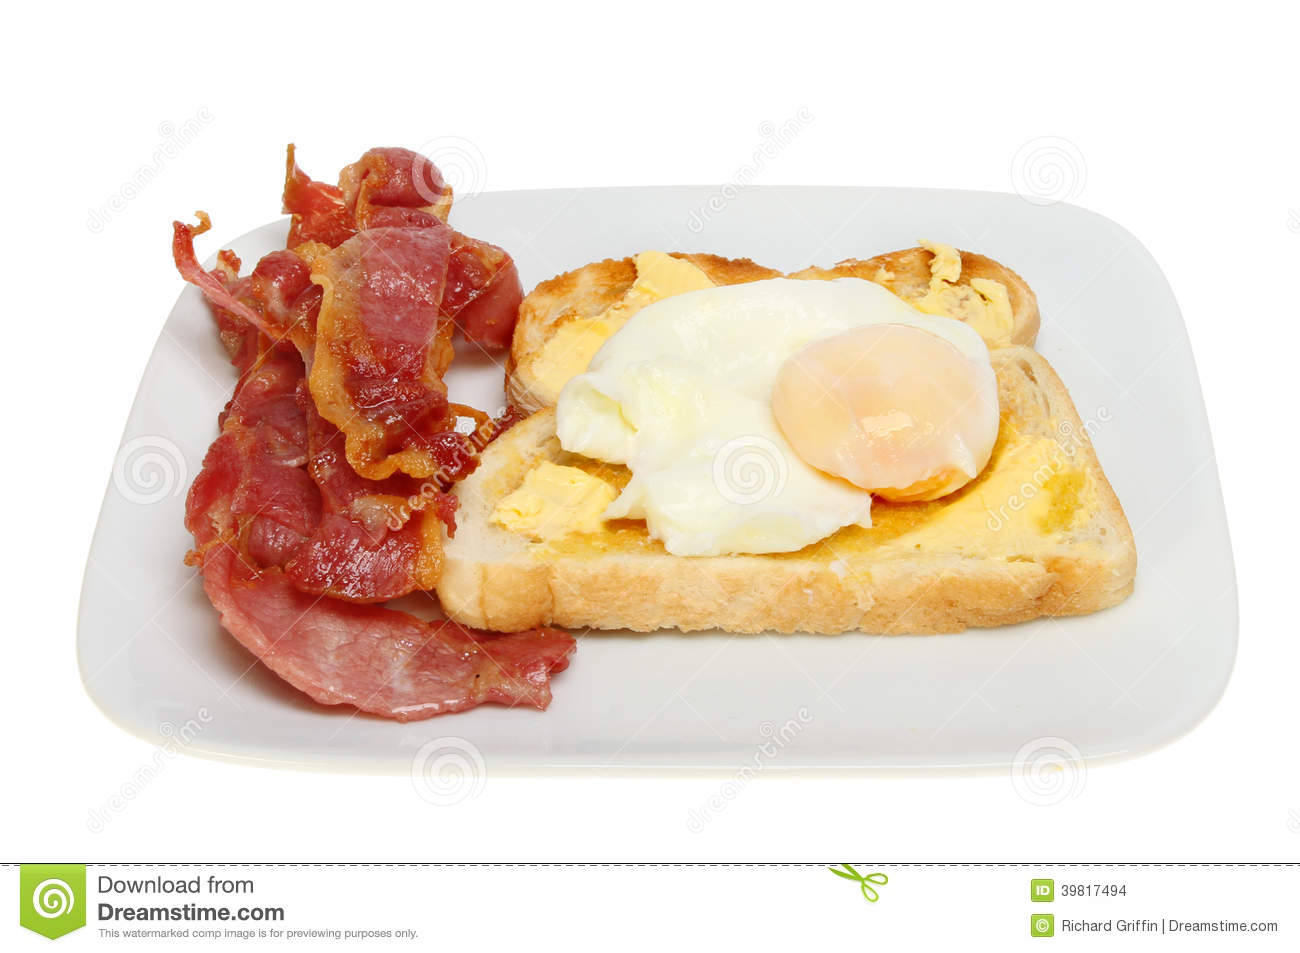 how to cook bacon and eggs on toast